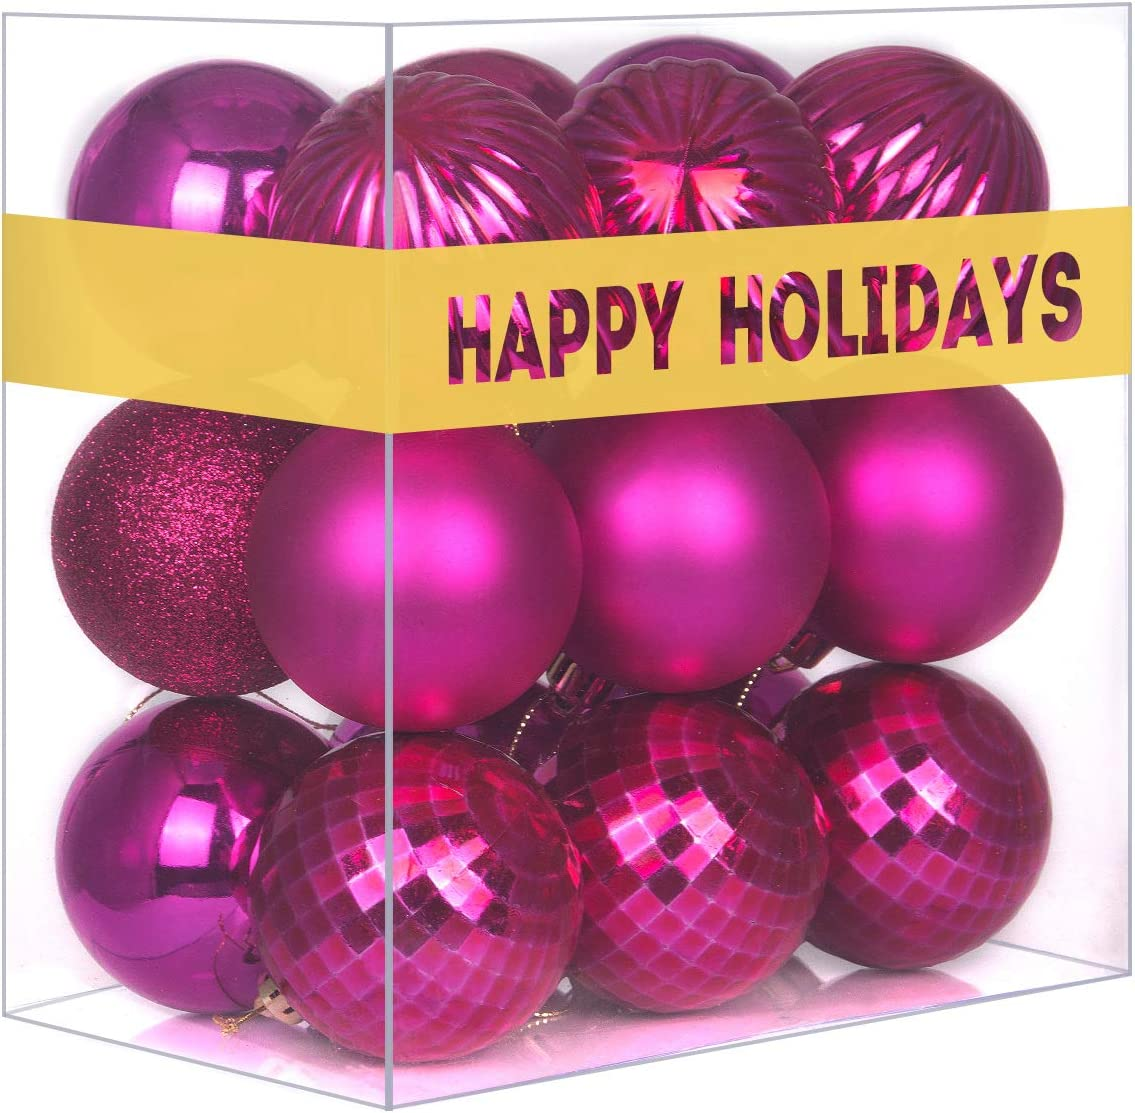 GameXcel 36Pcs Christmas Balls Ornaments for Xmas Tree - Shatterproof Christmas Tree Decorations Large Hanging Ball Fluorescent Pink 2.5